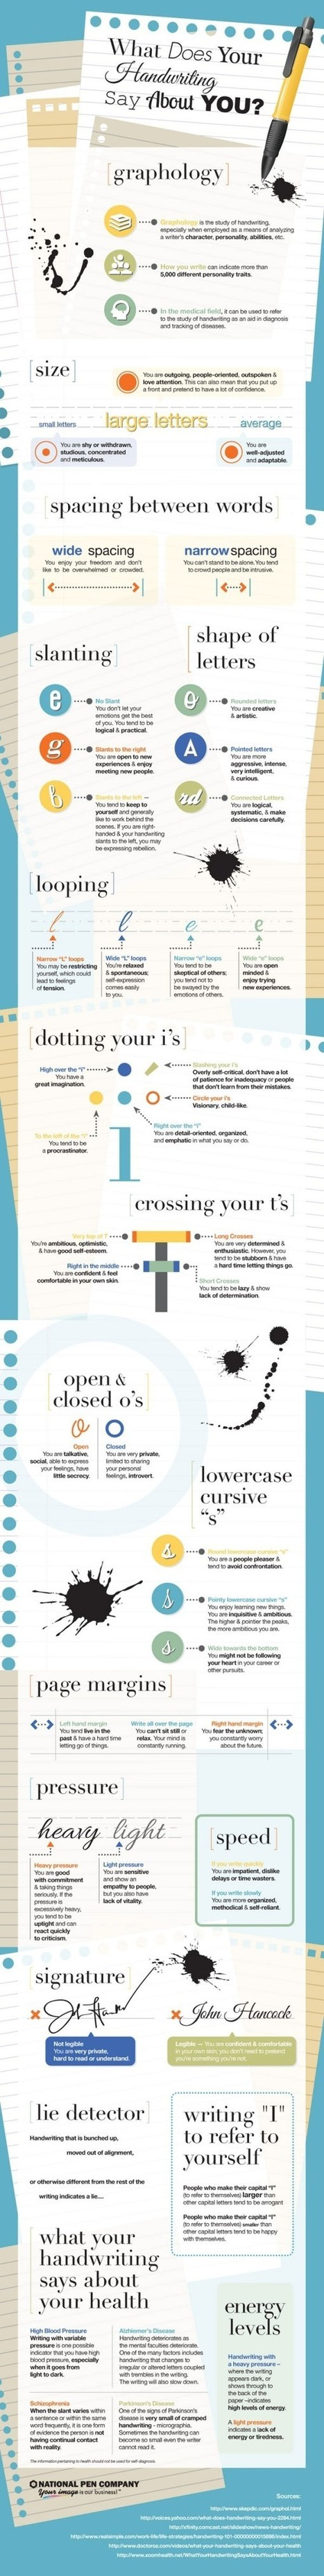 What does your handwriting say about you? [infographic] | InfoGraphicPlanet | Scoop.it